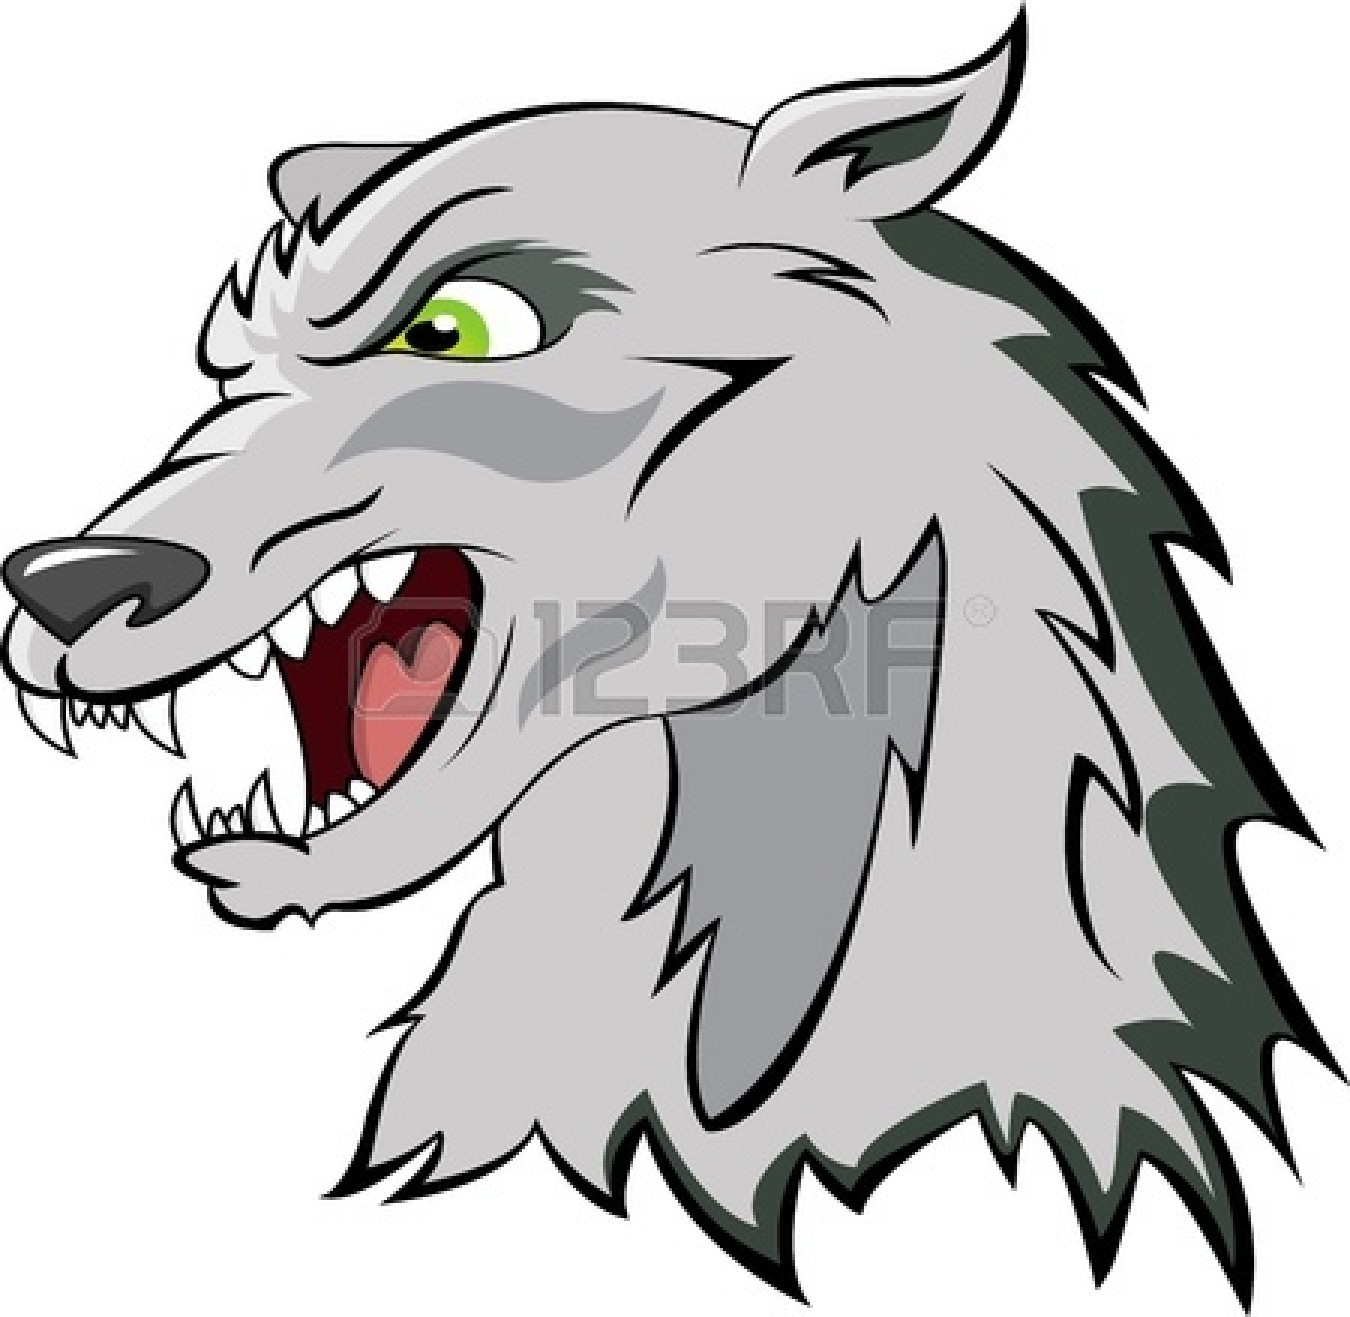 1350x1317 Big Bad Wolf Clipart 2226920